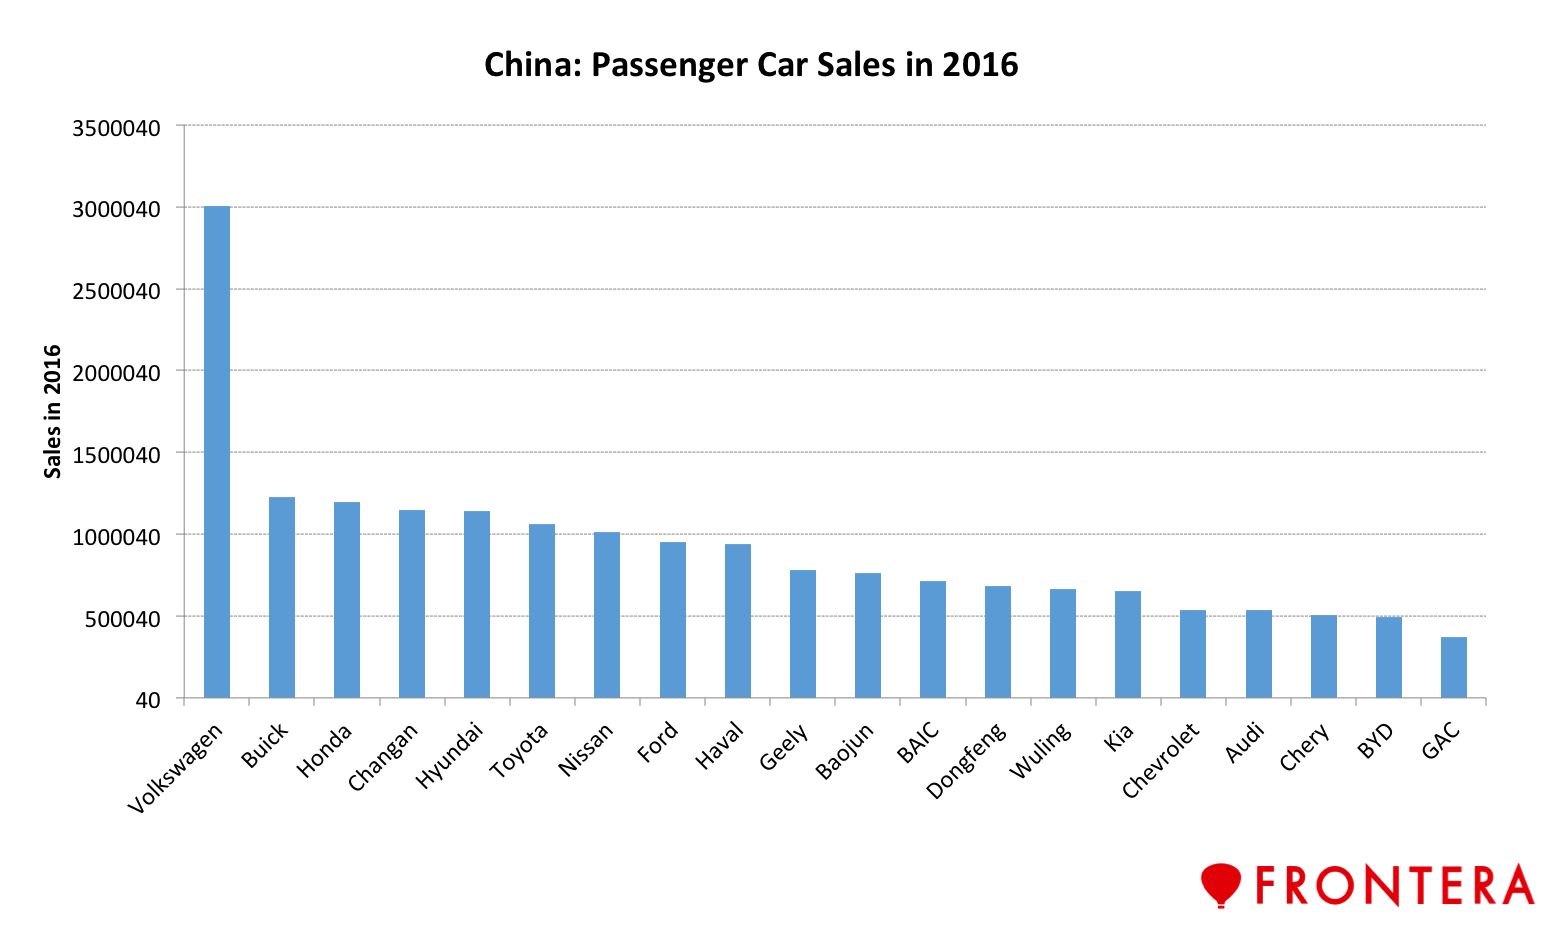 China S Status As The Largest Car Market Globally Is Attracting Many Foreign Manufacturers Through Joint Ventures And Partnerships